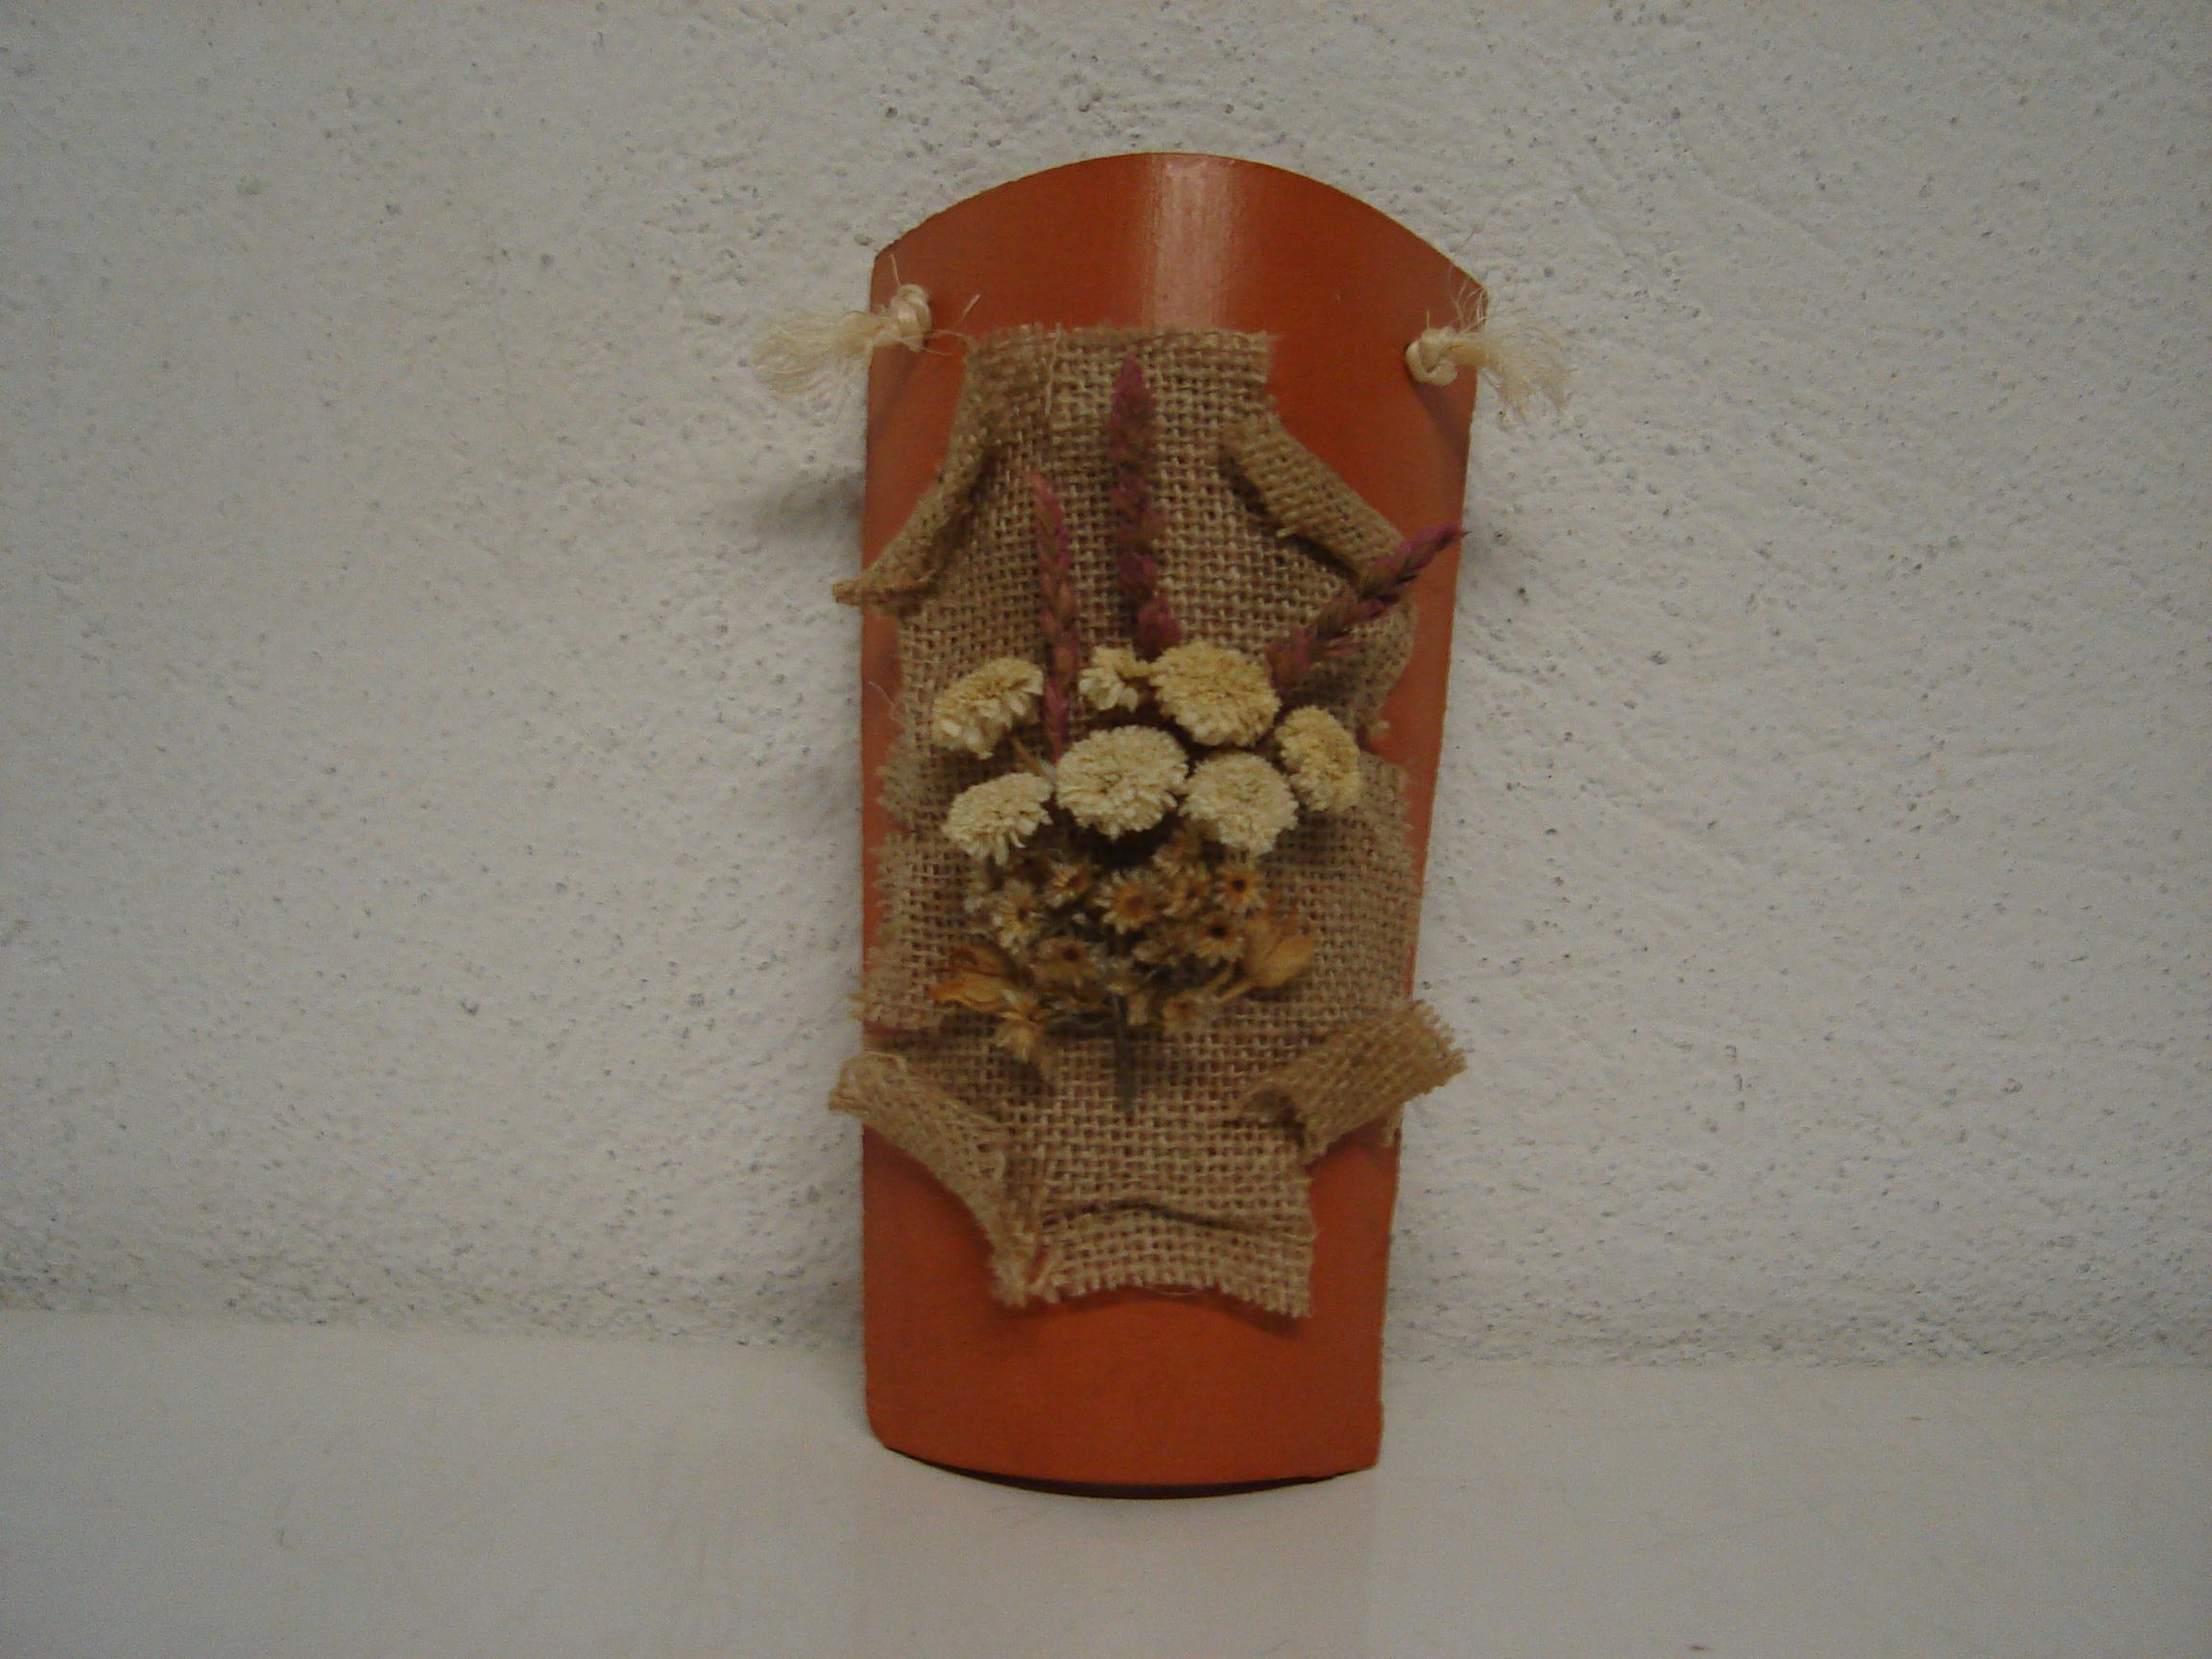 Enlace decorar teja con flores secas ideas pinterest - Decorar tejas en relieve ...